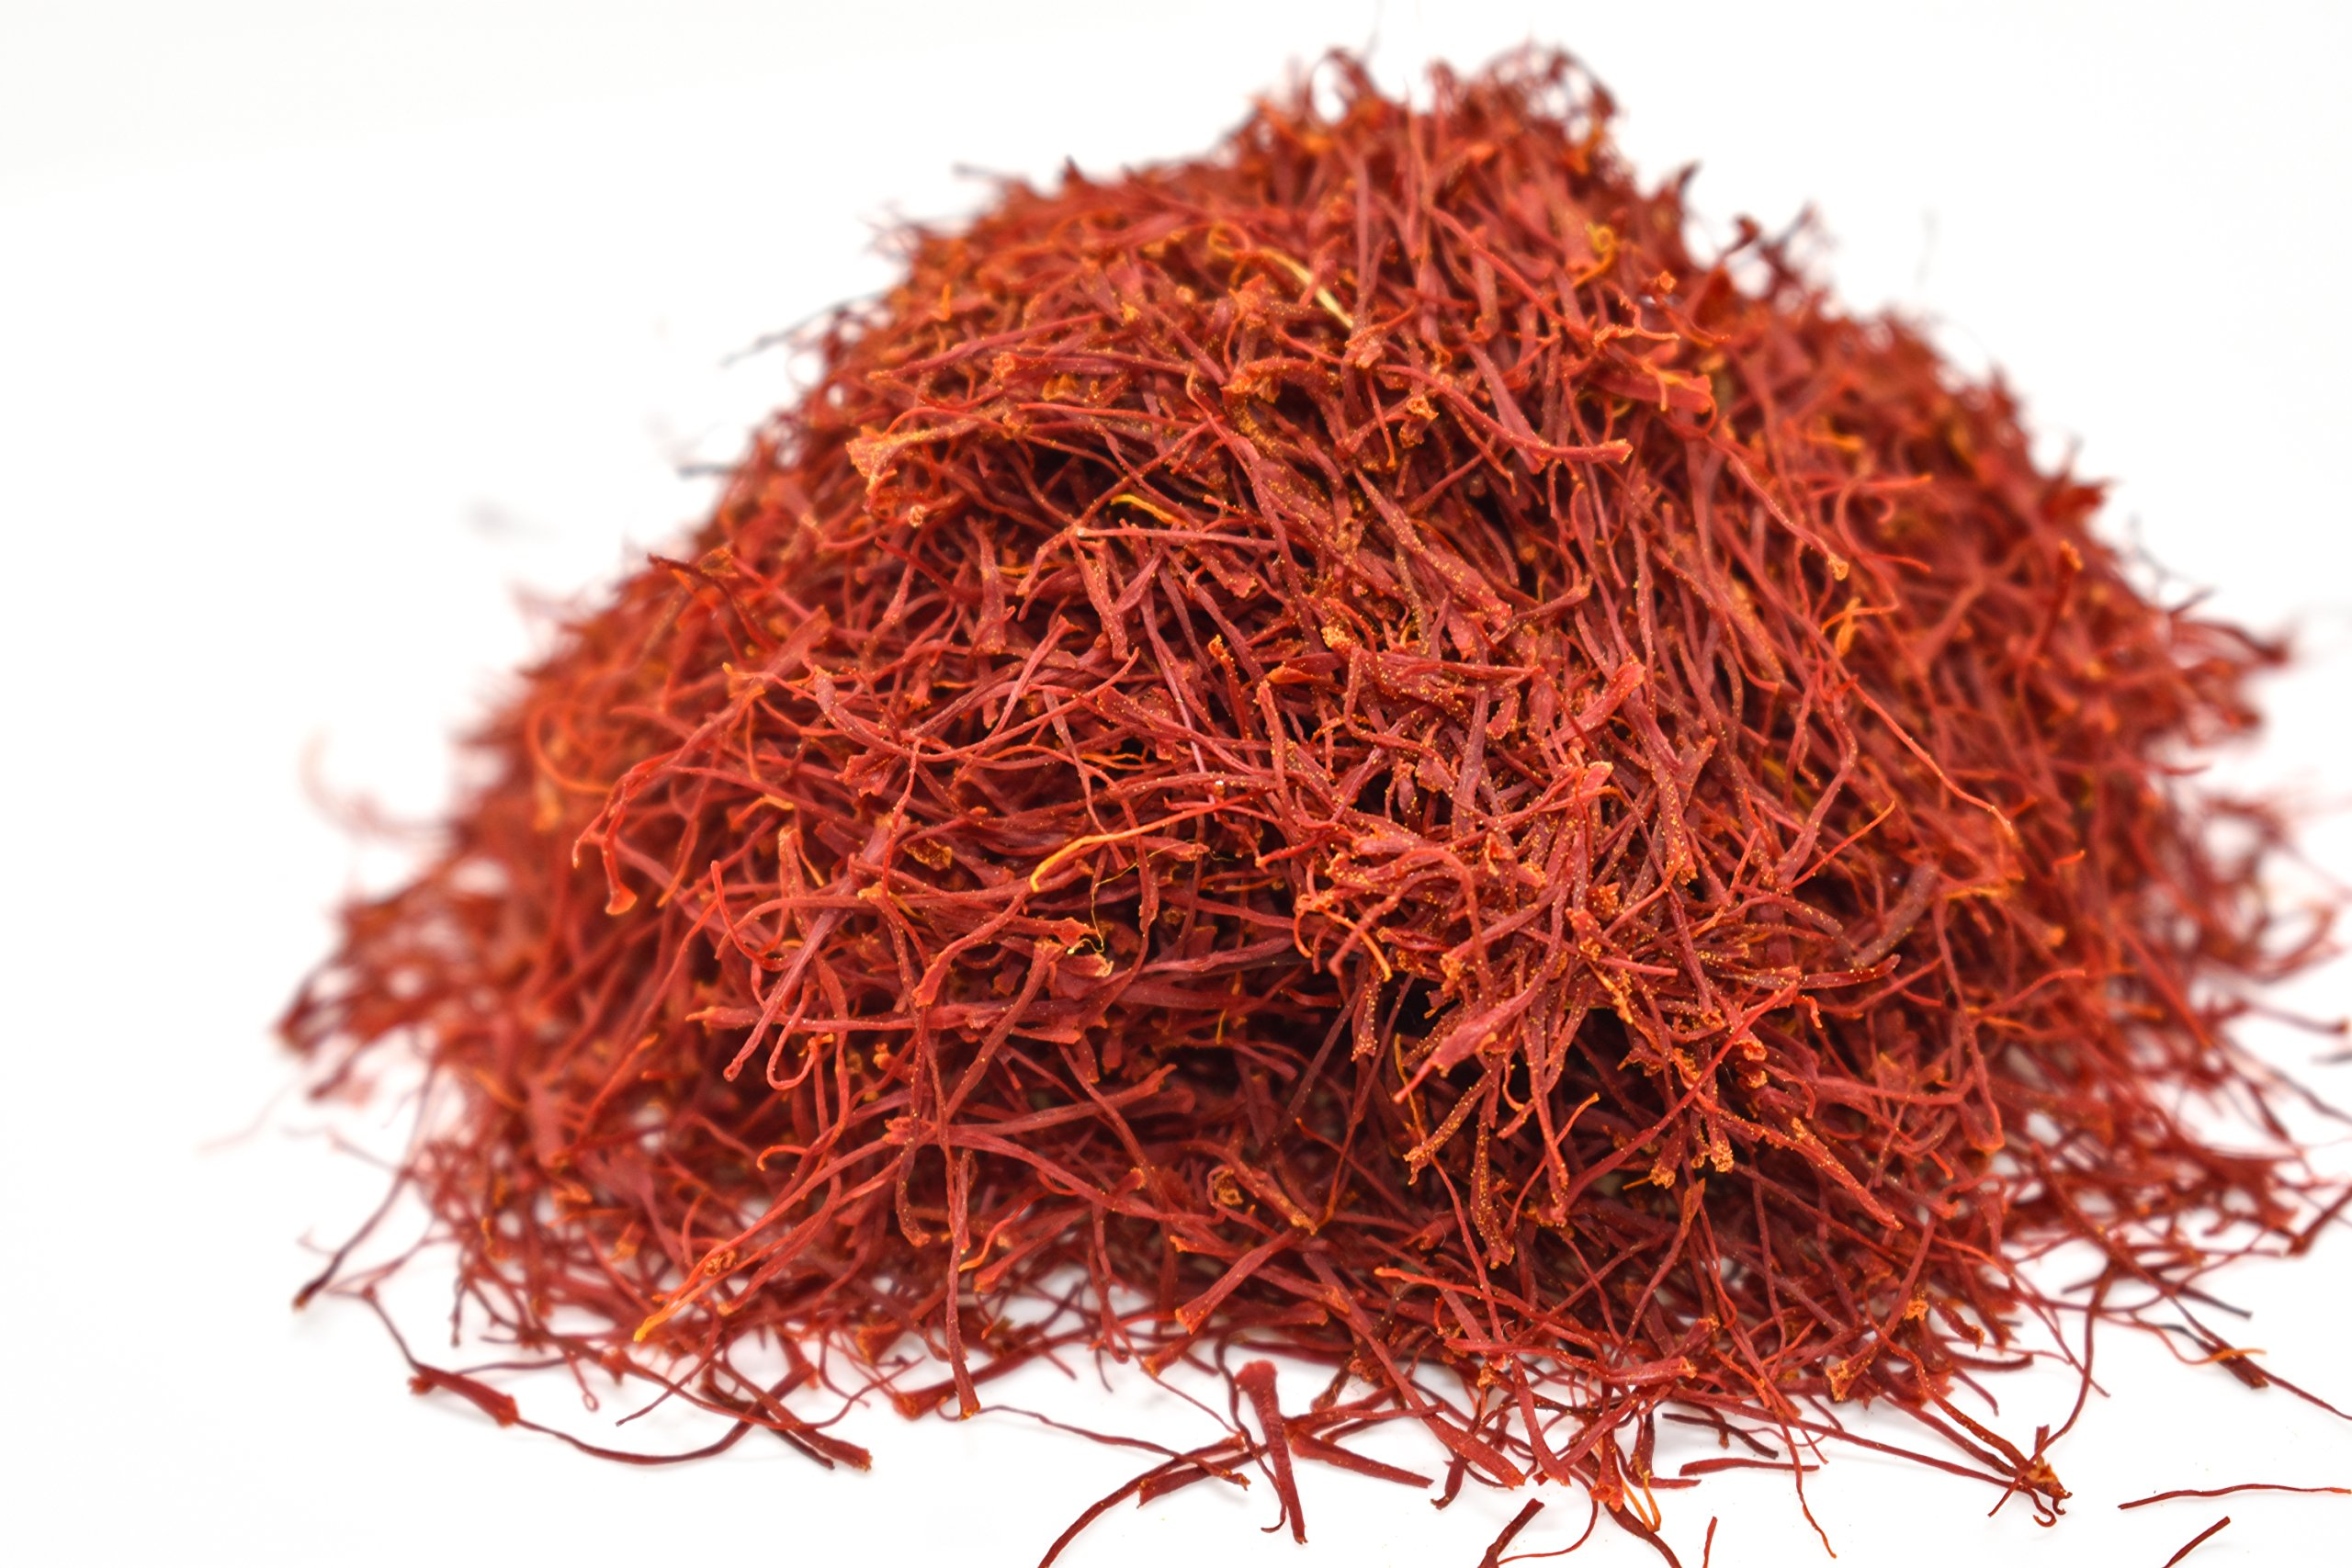 Persian Saffron Threads by Slofoodgroup Premium Quality Saffron Threads, All Red Saffron Filaments (various sizes) Grade I Saffron (1 Ounce Saffron) by SLO FOOD GROUP (Image #4)